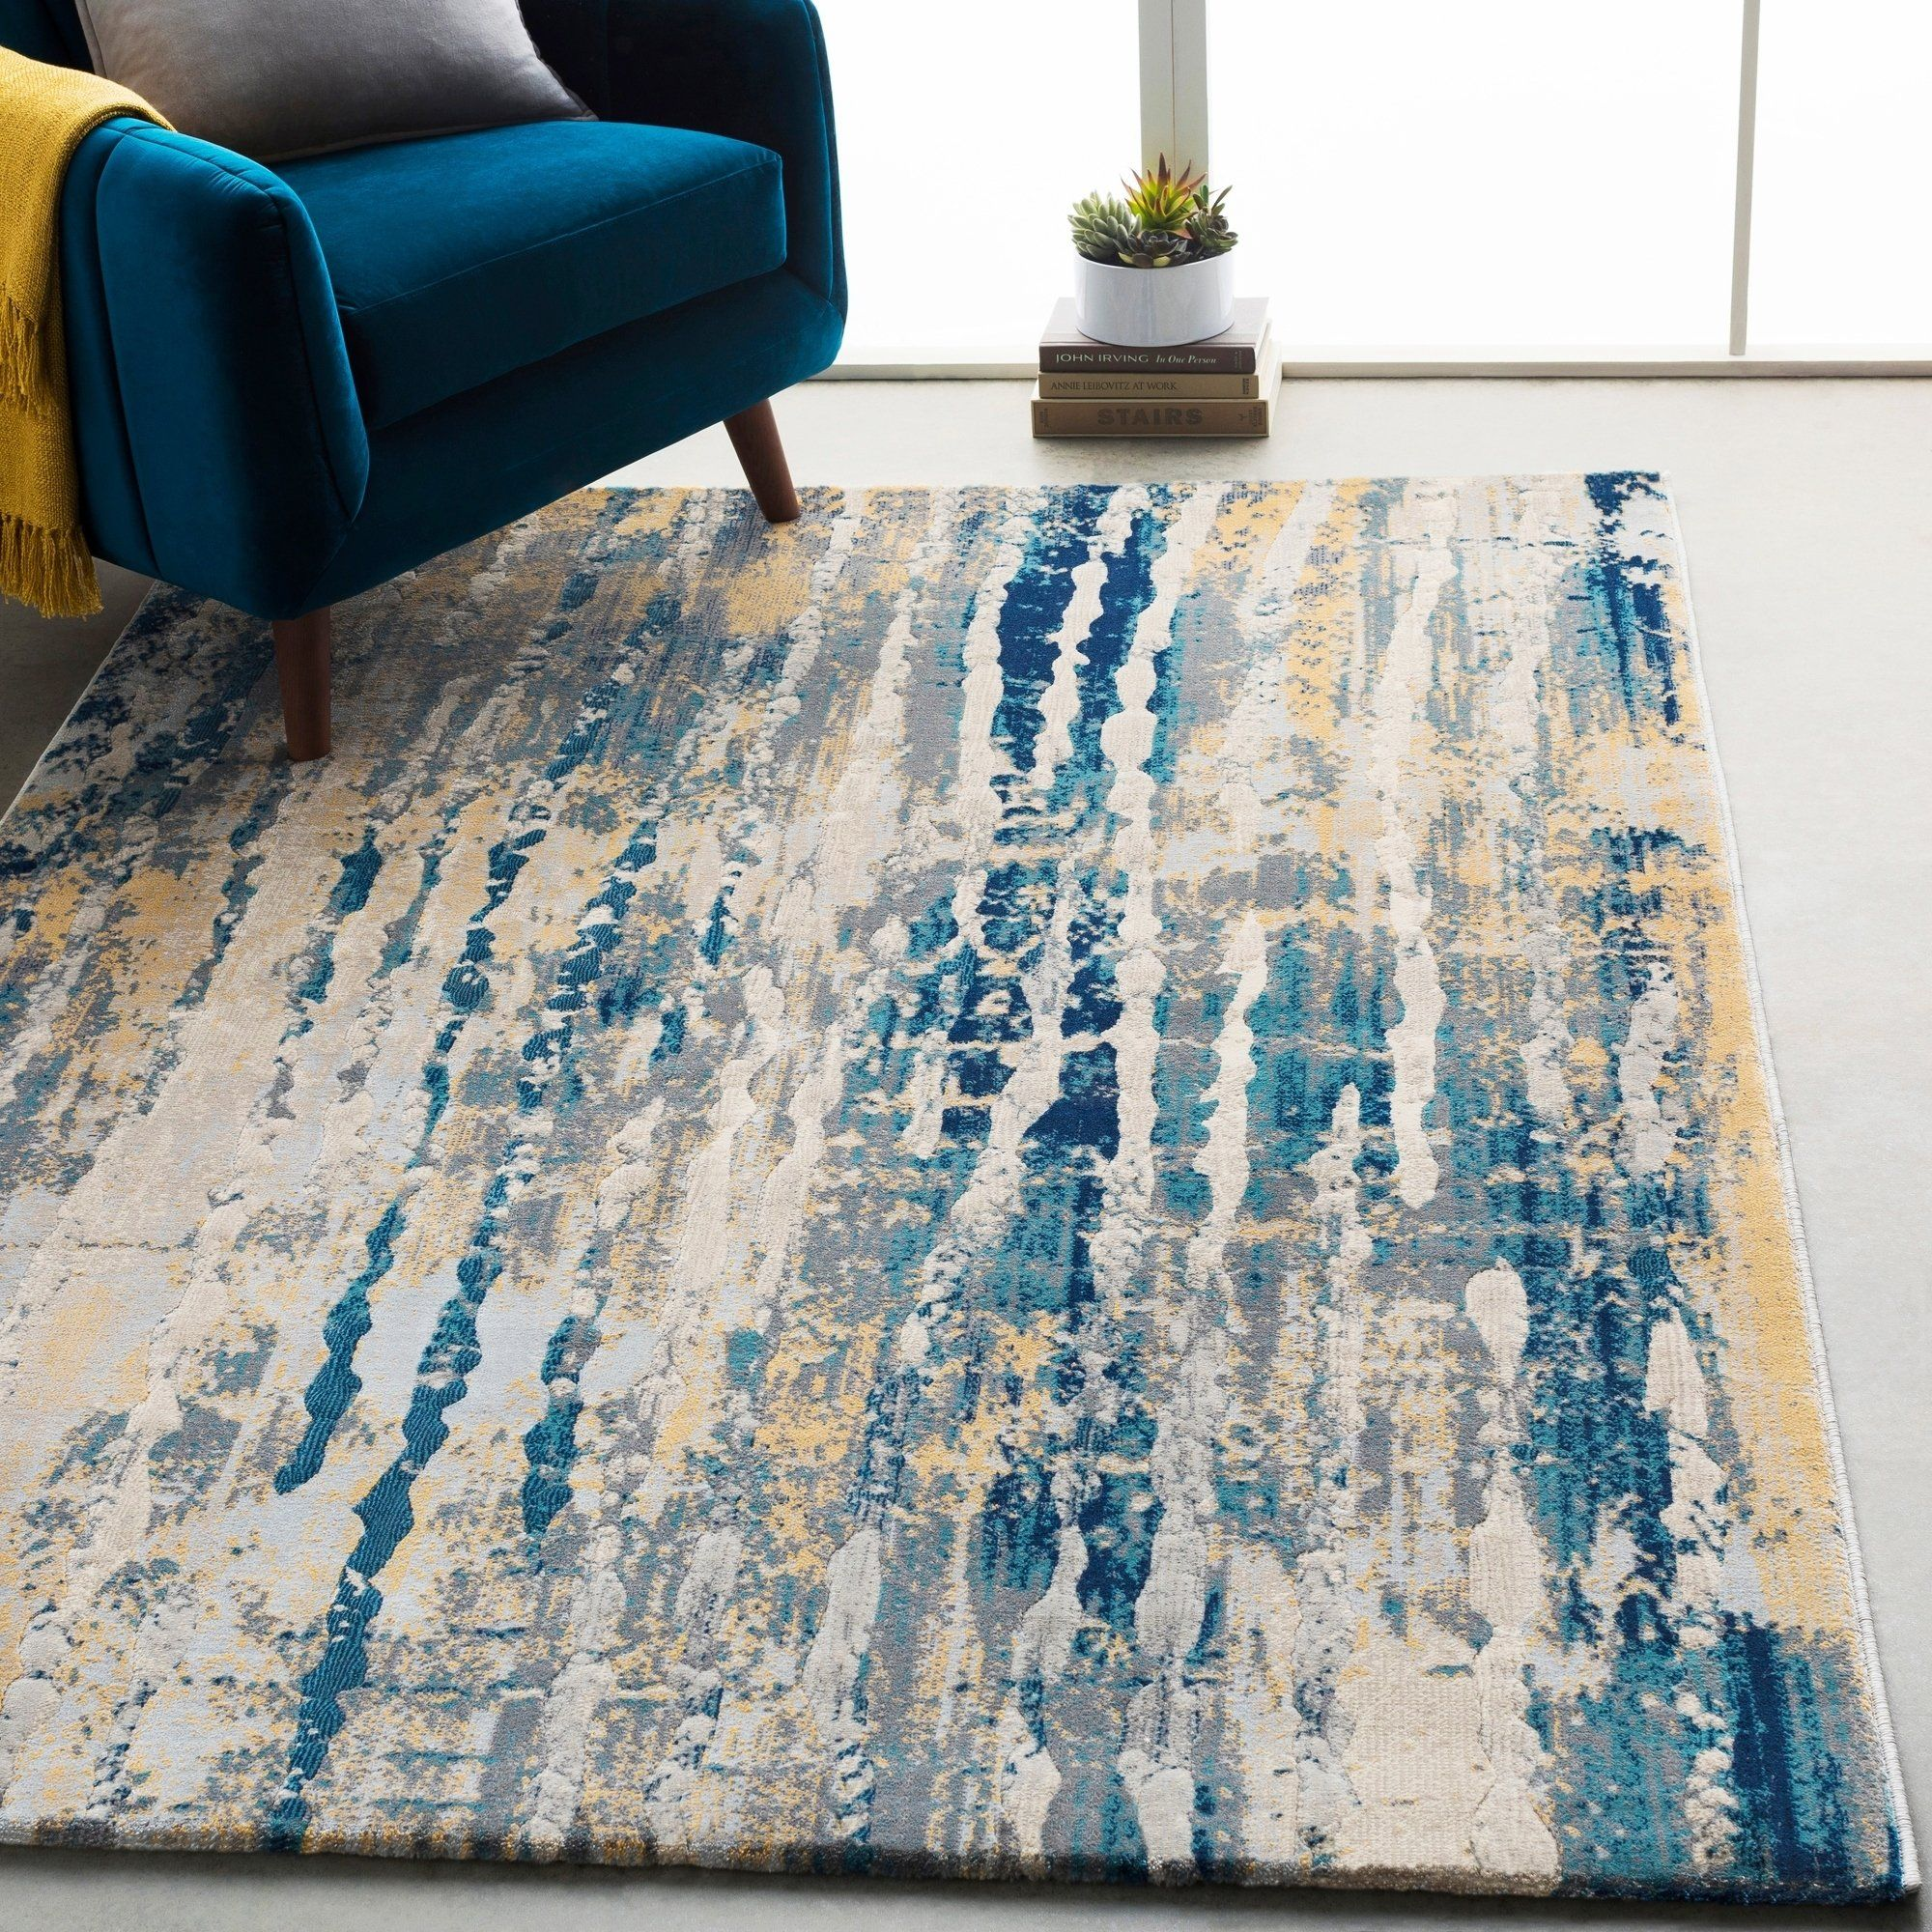 Monae Navy And Yellow Abstract Area Rug 7 10 X 10 3 Navy 7 10 X 10 3 Blue Rugs In Living Room Blue And Yellow Living Room Teal Living Rooms